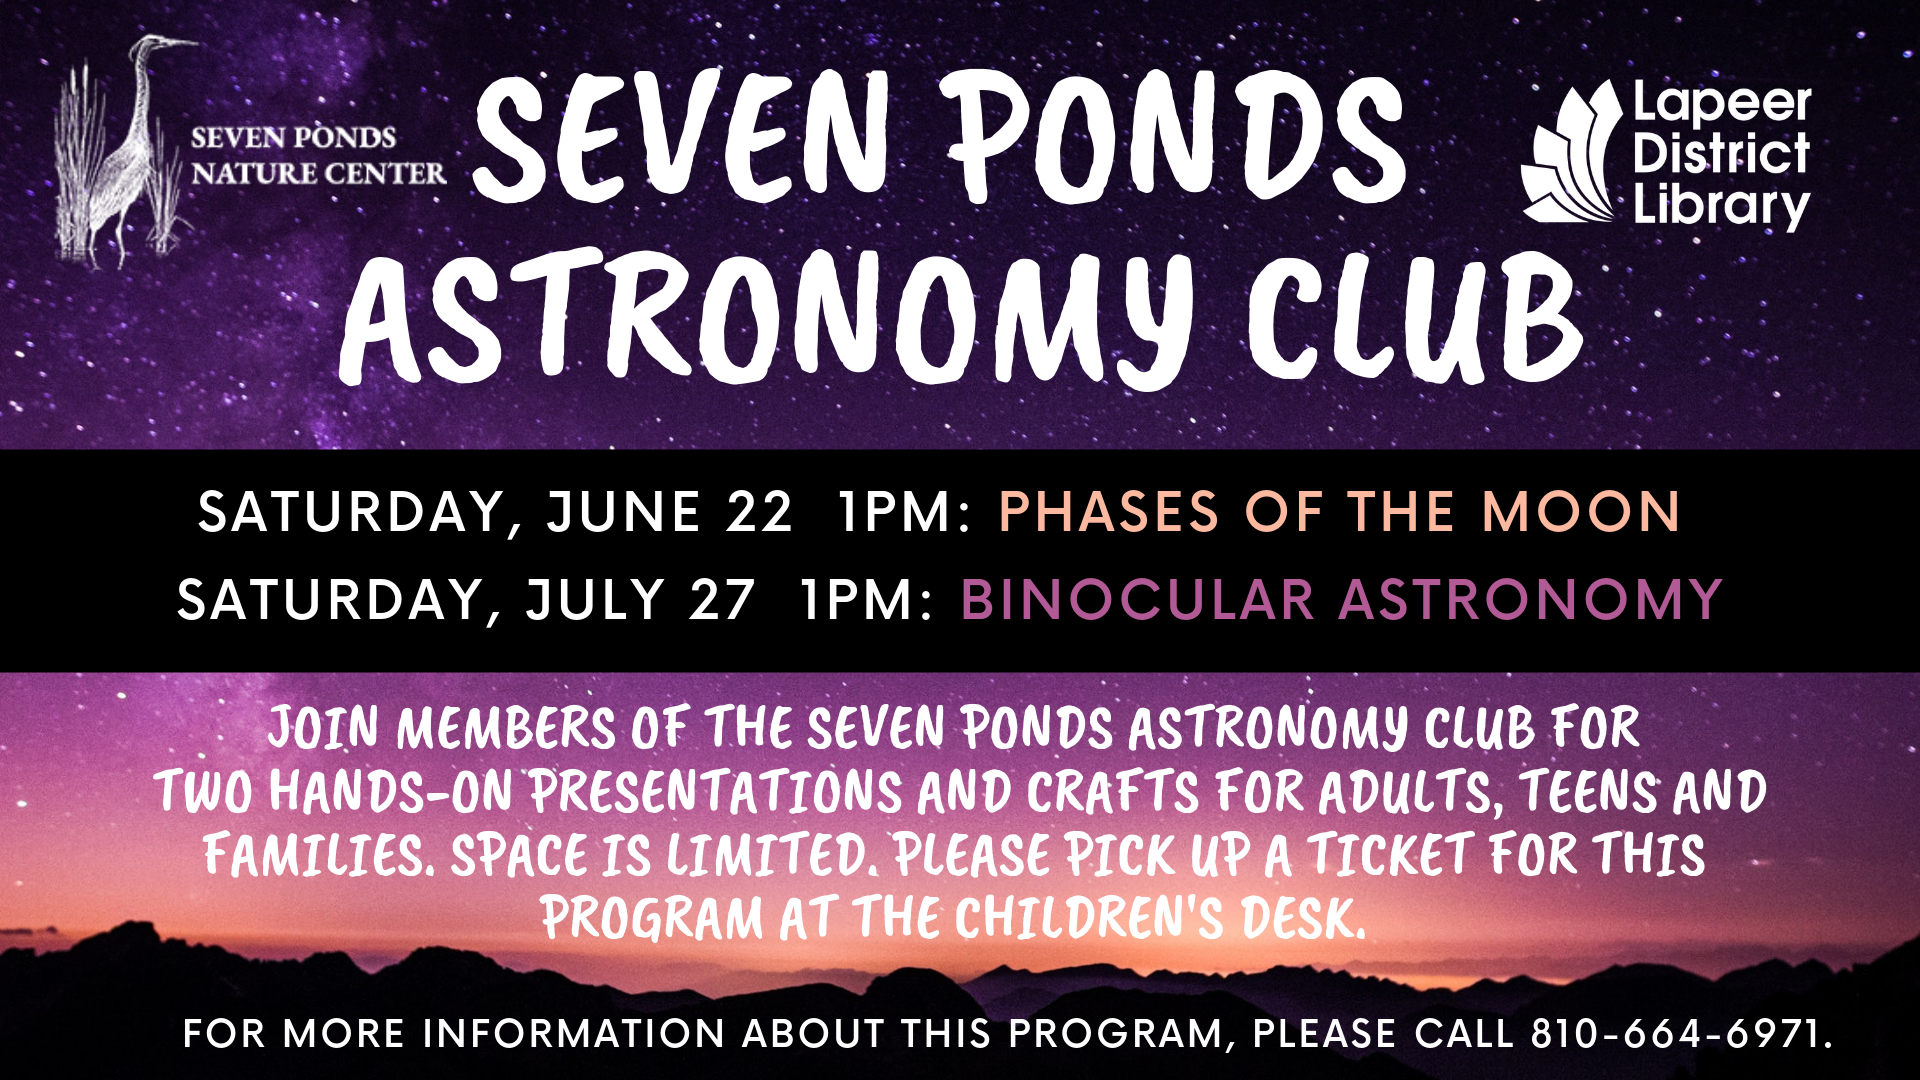 Seven Ponds Astronomy Club